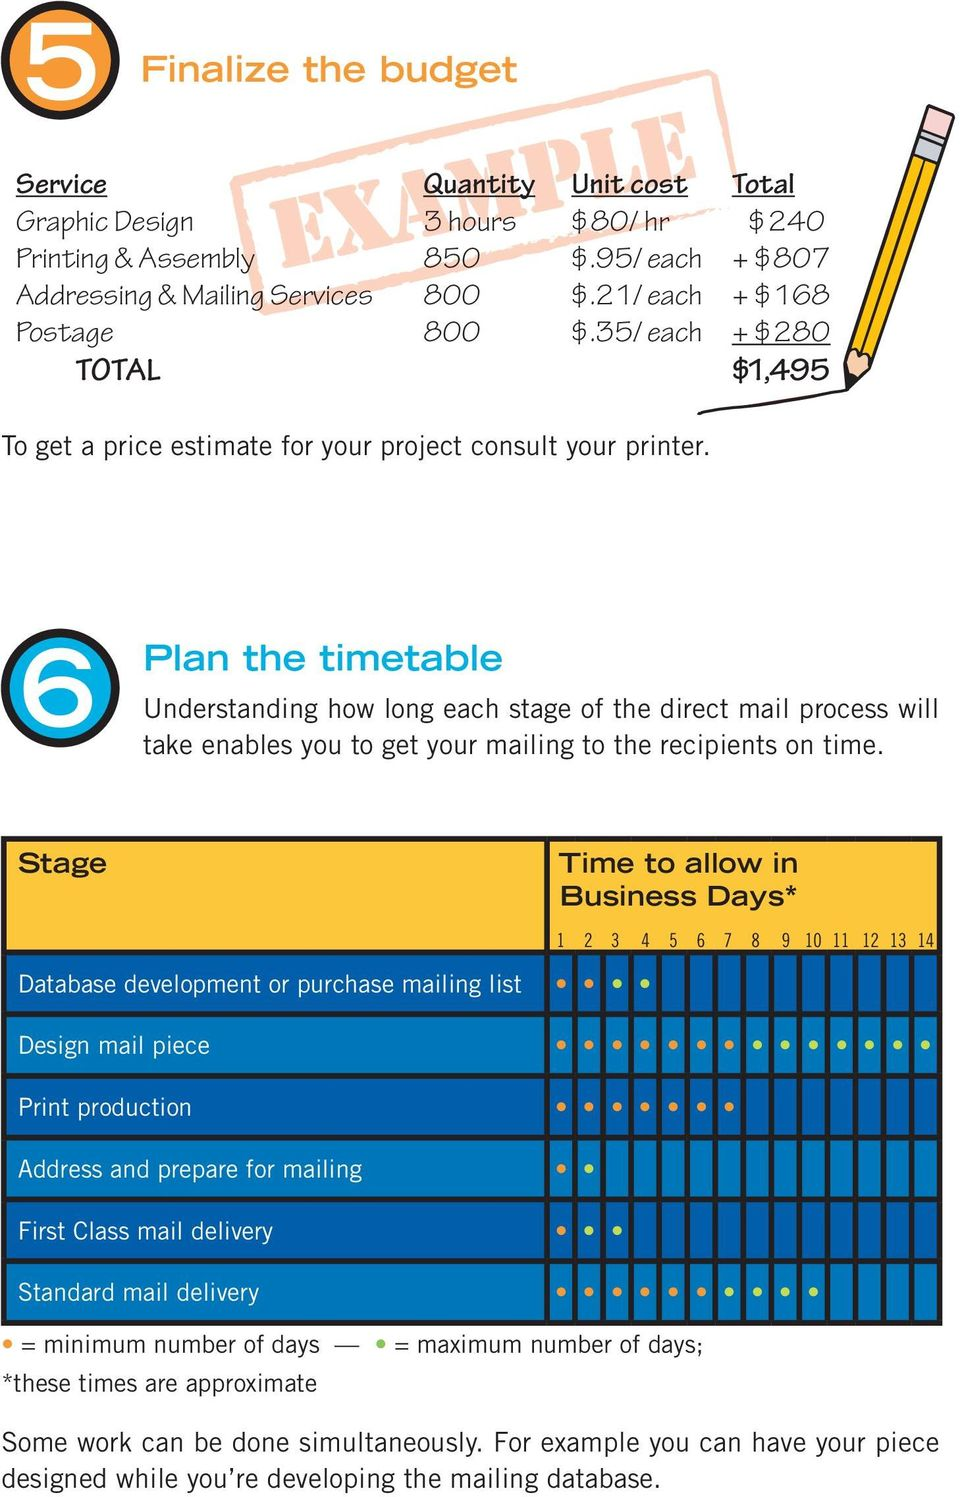 Plan the timetable Understanding how long each stage of the direct mail process will take enables you to get your mailing to the recipients on time.